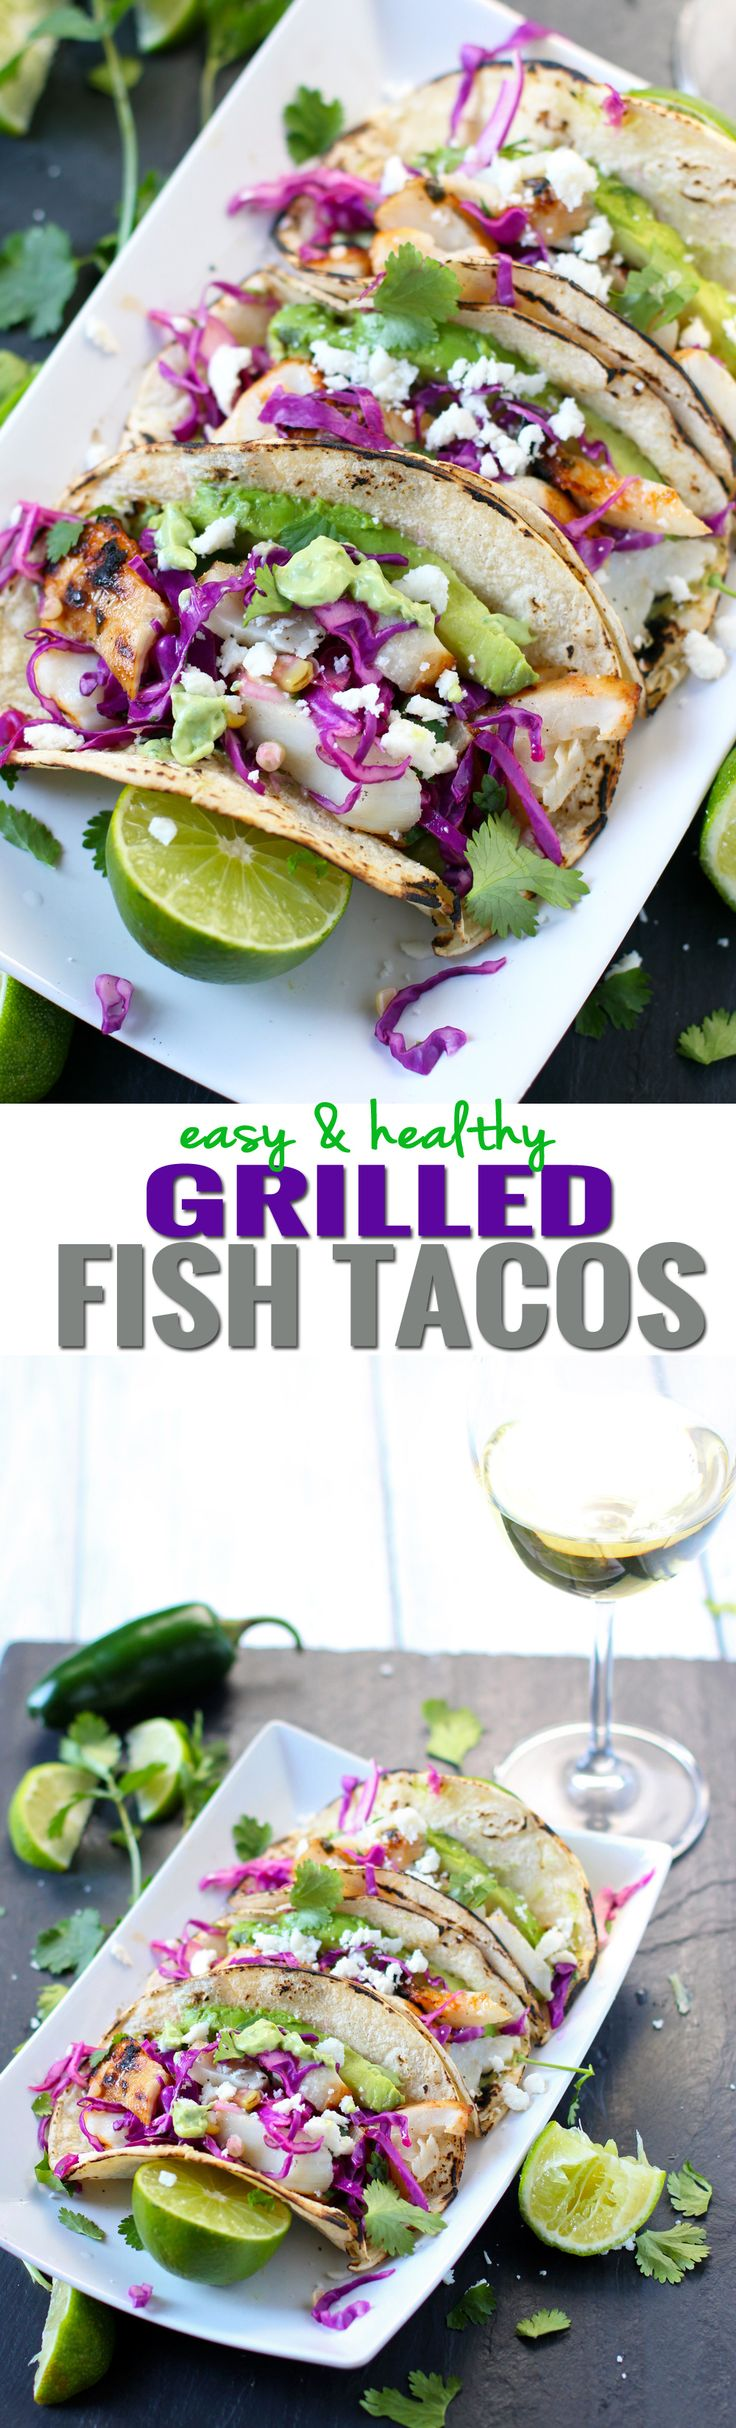 Easy and Healthy Grilled Fish Tacos!! Satisfying and tasty enough for even the biggest meat lover! Make a quick marinade, grill, then top with a simple grilled corn slaw and a creamy avocado sauce. Pair with wine and you've got the perfect Taco Tuesday meal!! Sooo good!